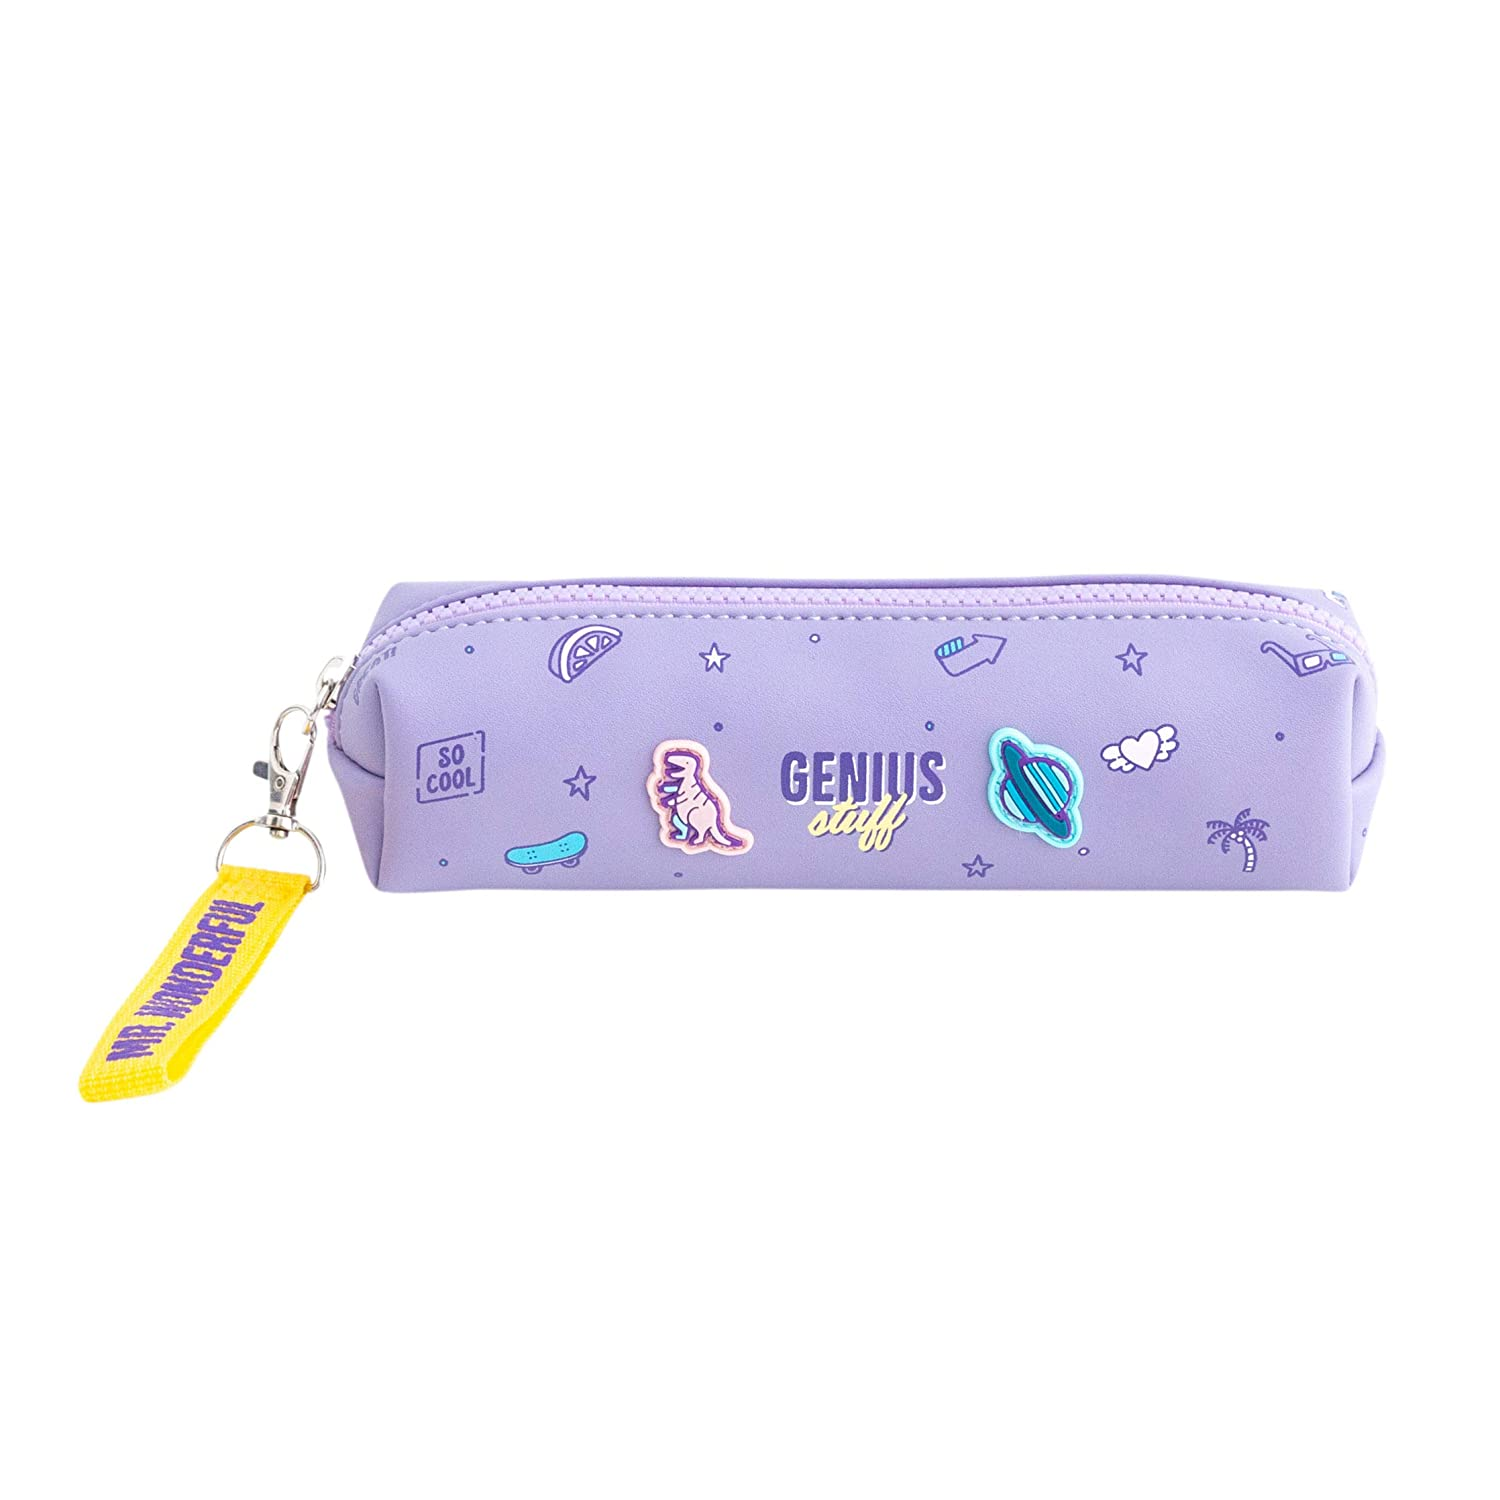 Mr. Wonderful Pencil Case-Genius Stuff, Multicolor, Talla Única ...